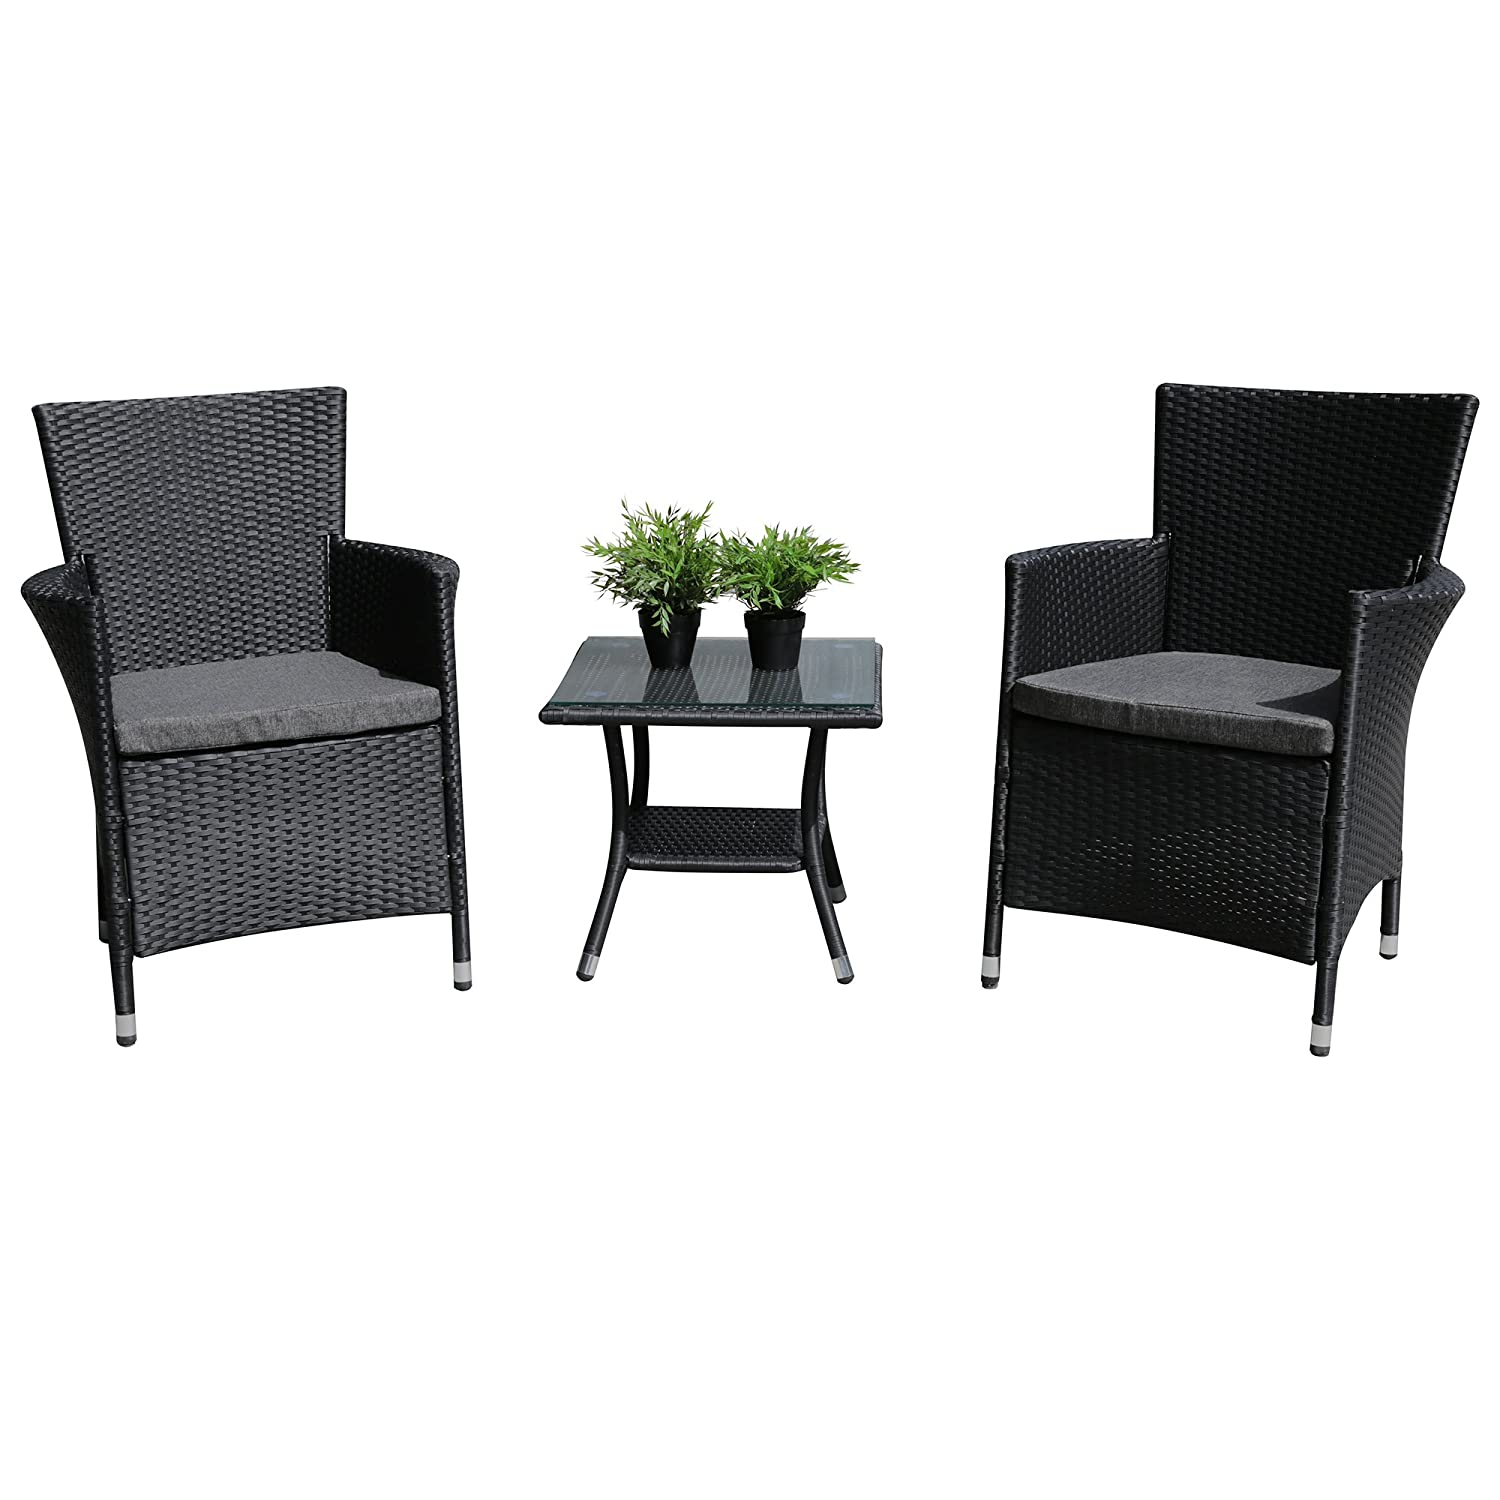 Luxury Small Outside Table and Chairs